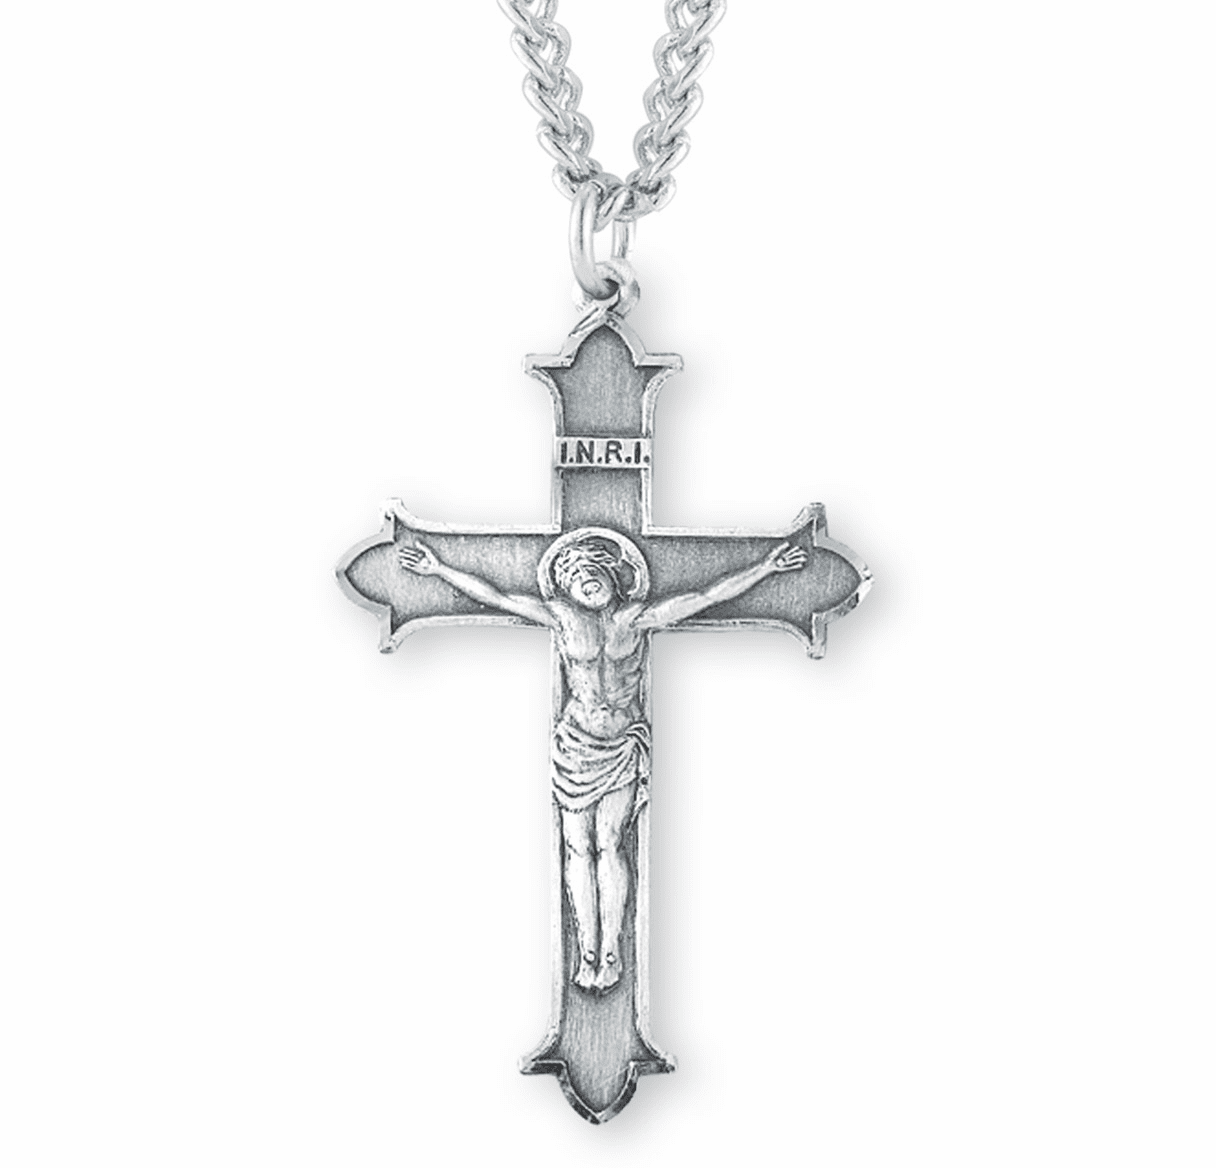 INRI with Crown Tips Flare Tipped Sterling Silver Crucifix Cross Necklace by HMH Religious